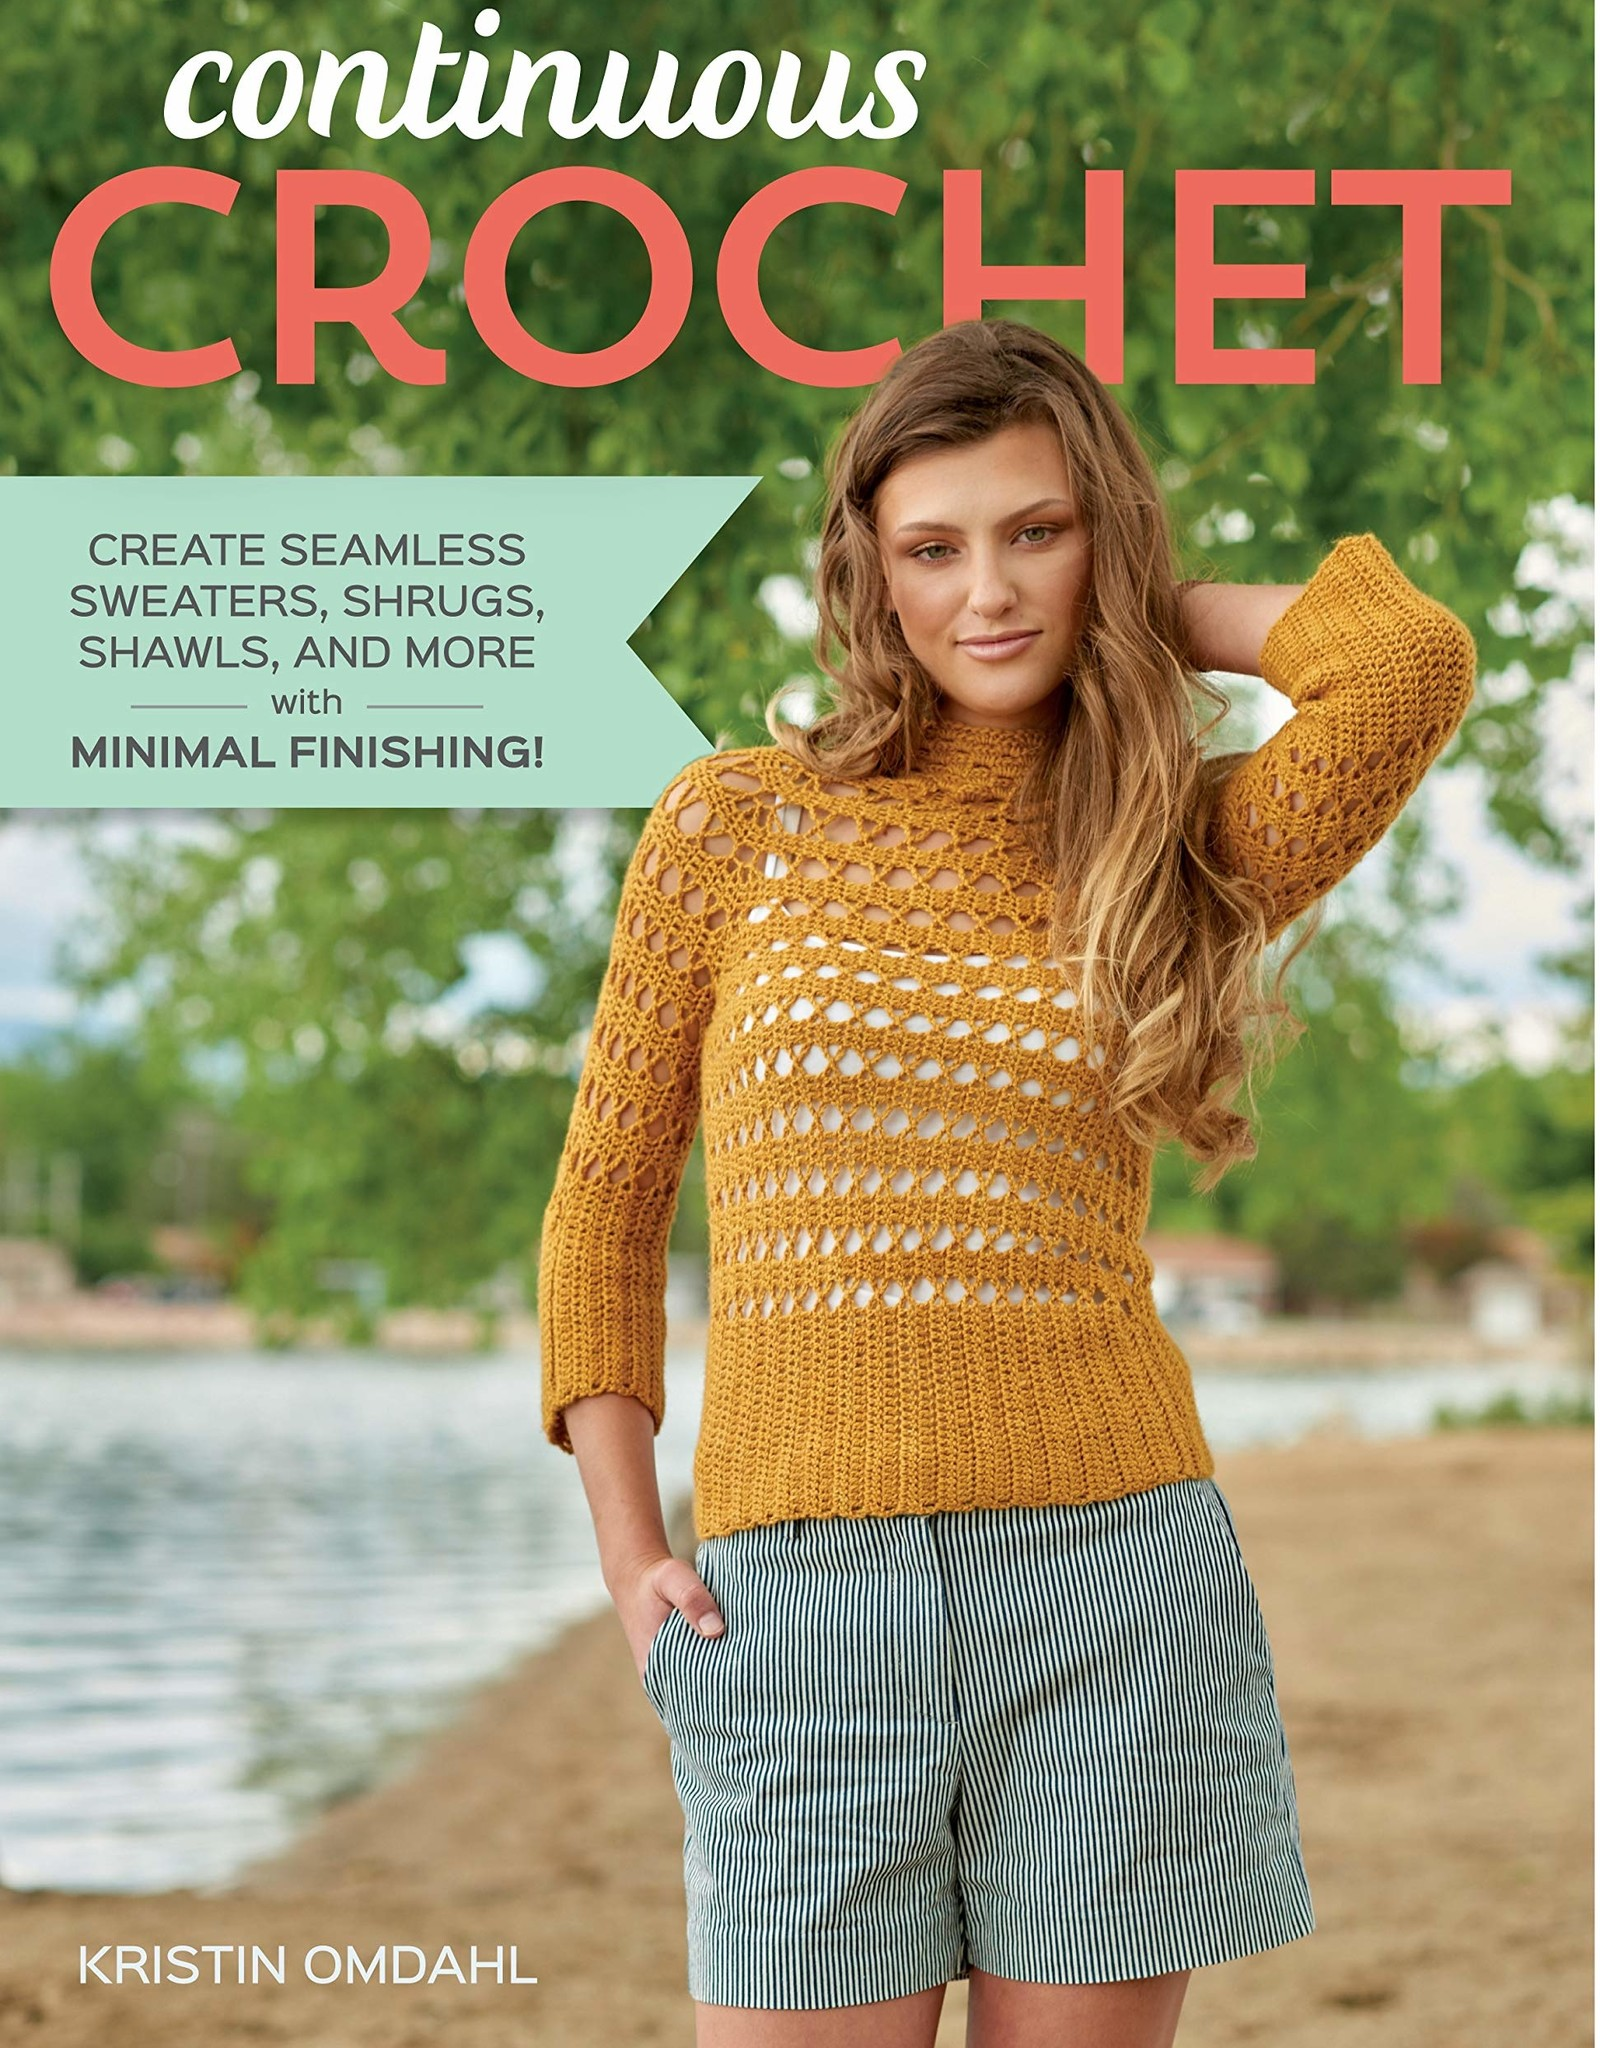 Ingram Continuous Crochet: Create Seamless Sweaters, Shrugs, Shawls and More--with Minimal Finishing!